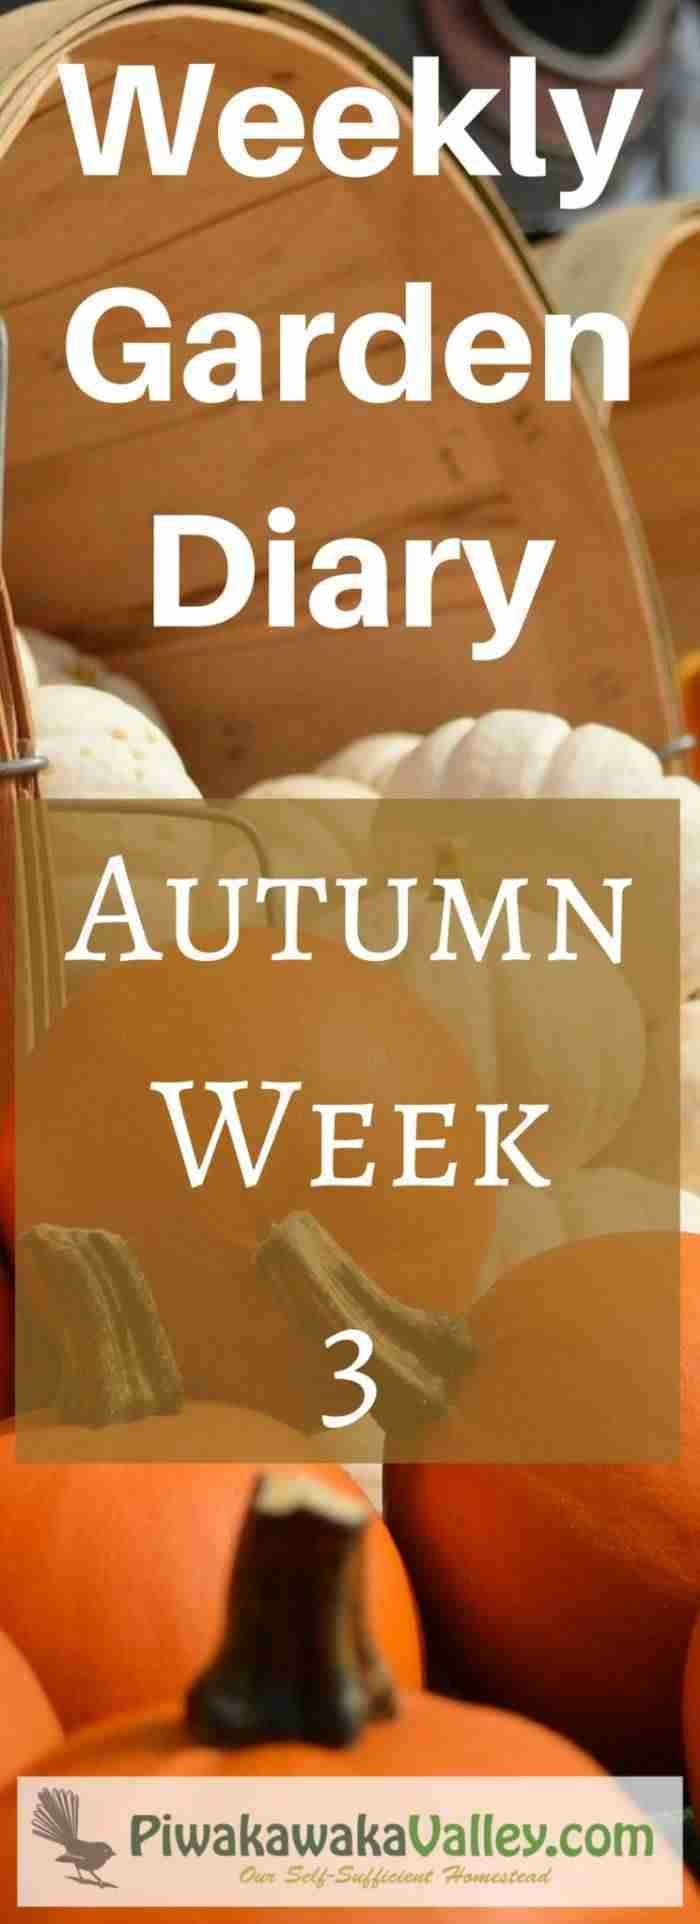 zone 9 weekly garden diary for autumn / fall week 3